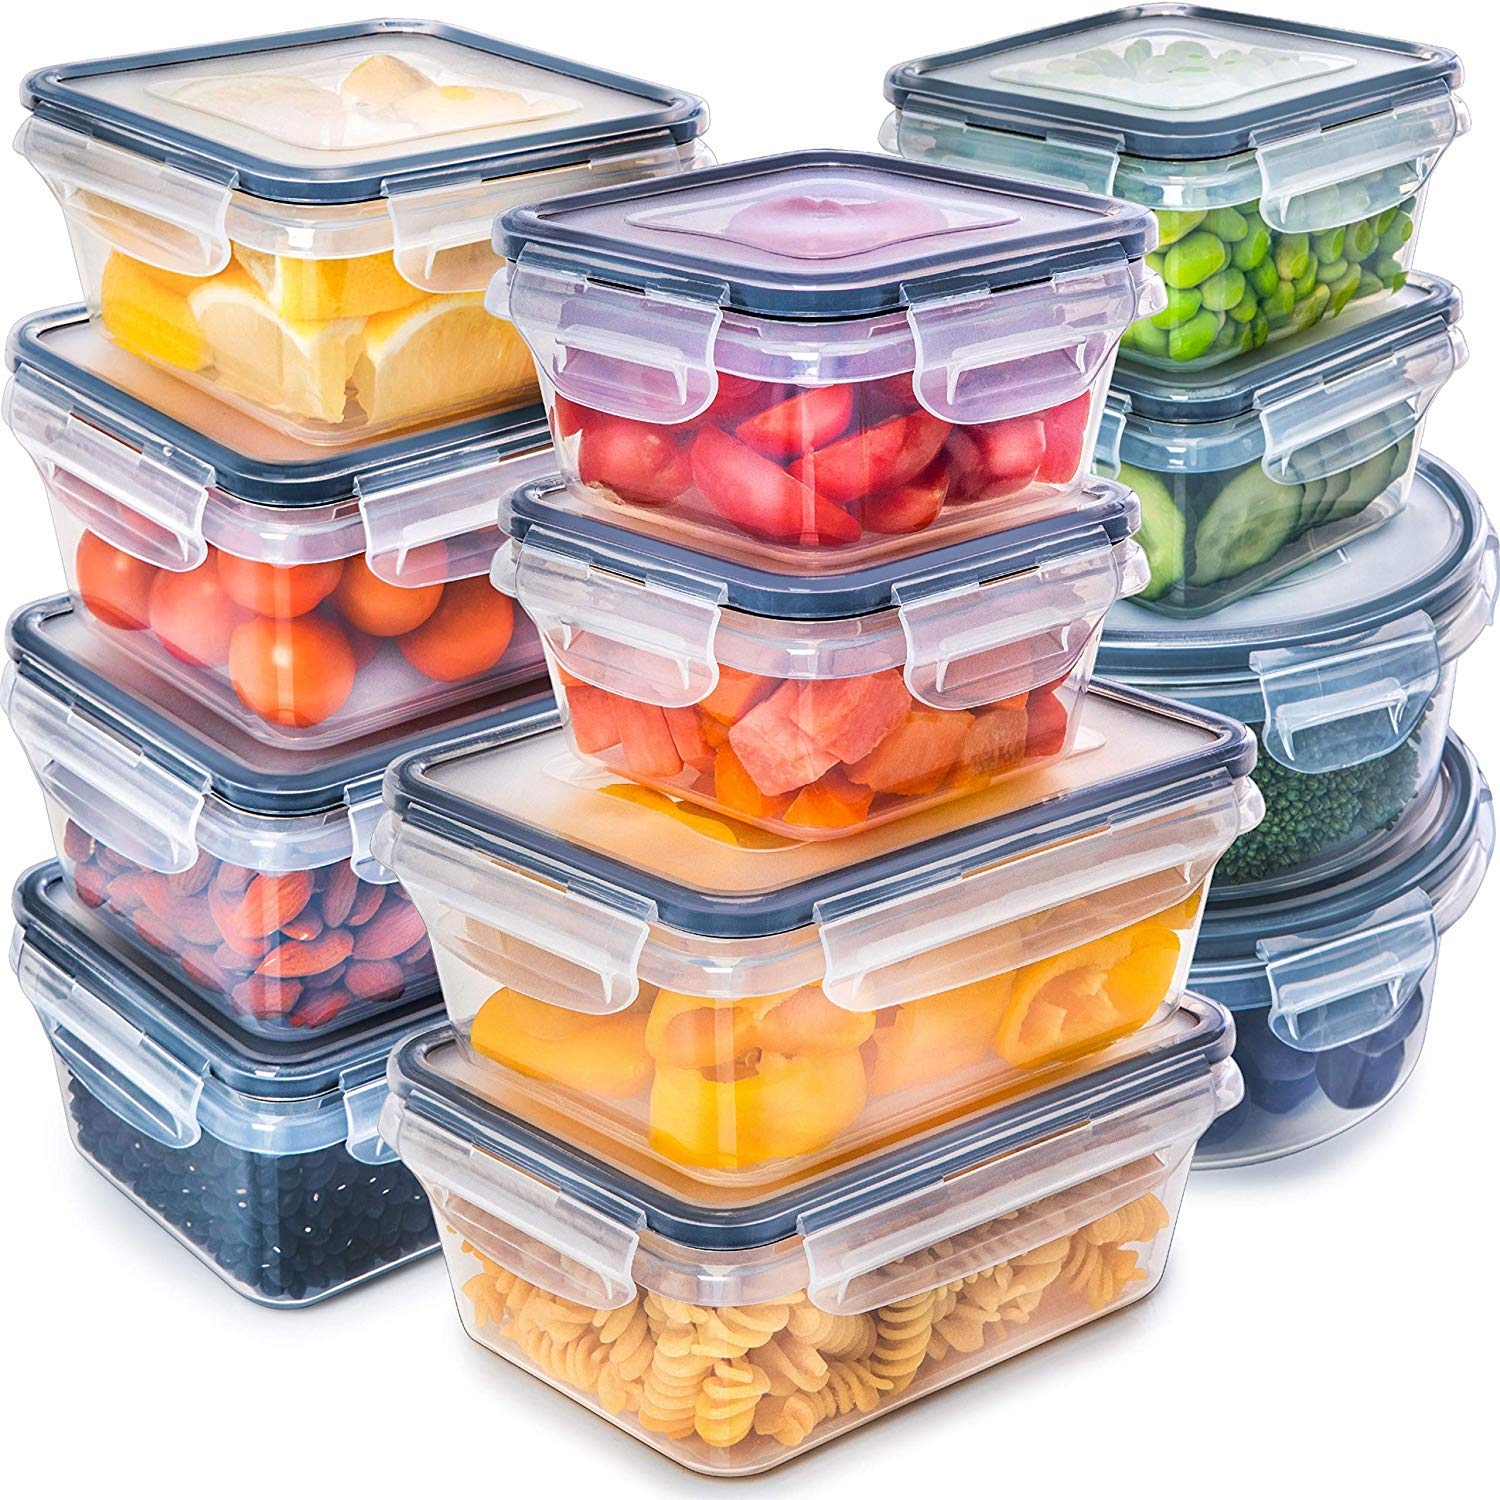 Fullstar Food Storage Containers with Lids, Set of 12